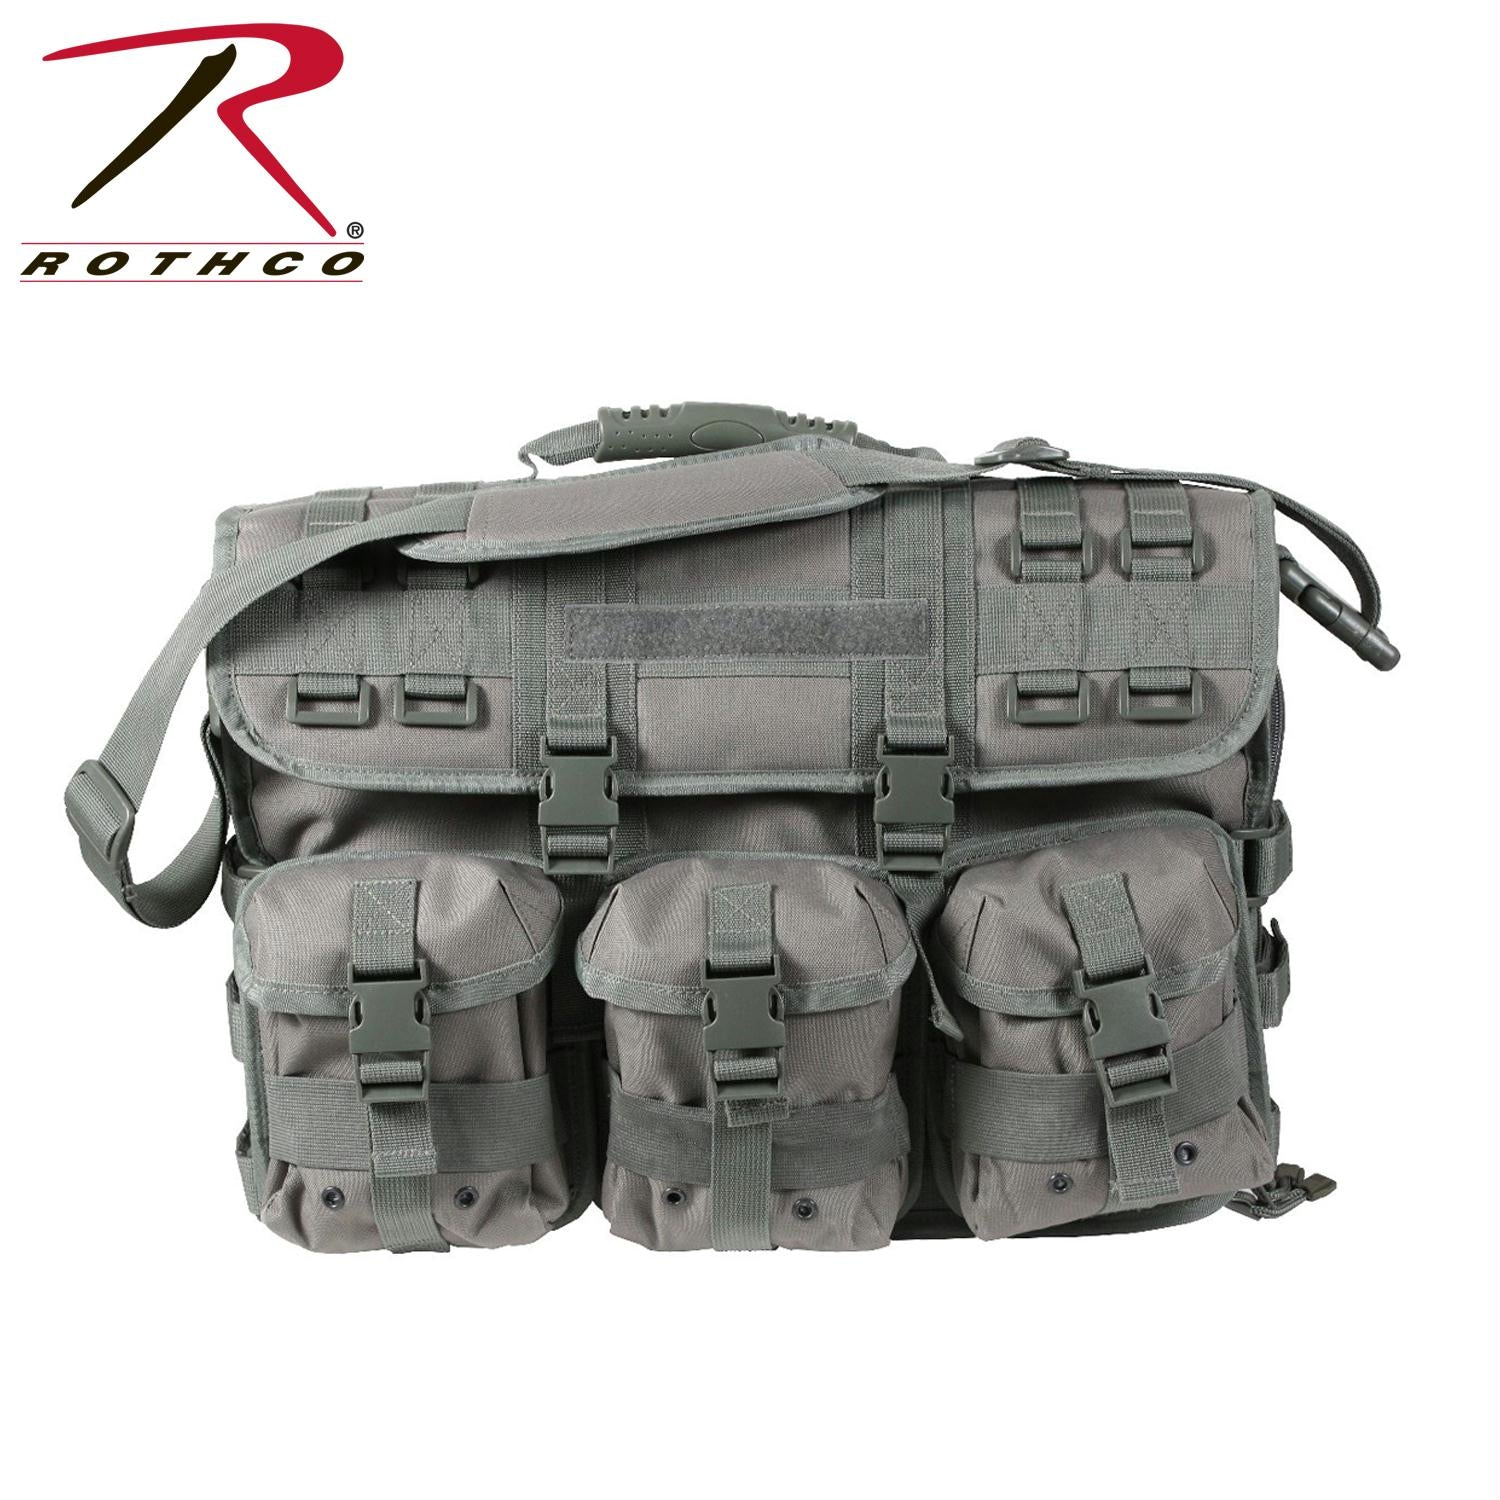 Rothco MOLLE Tactical Laptop Briefcase - Foliage Green